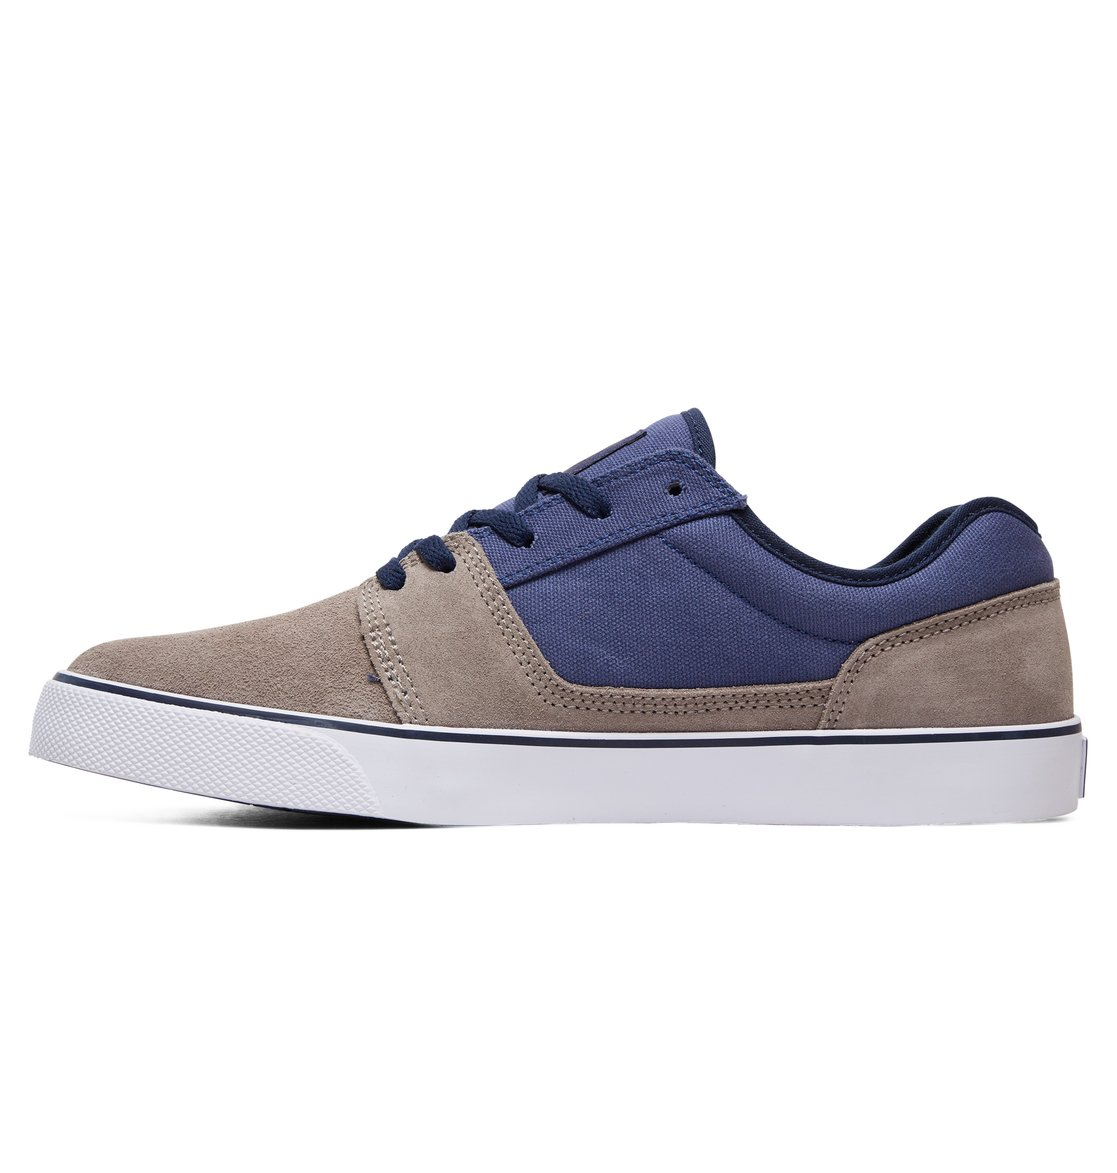 DC-Shoes-Tonik-Baskets-pour-Homme-302905 miniature 43